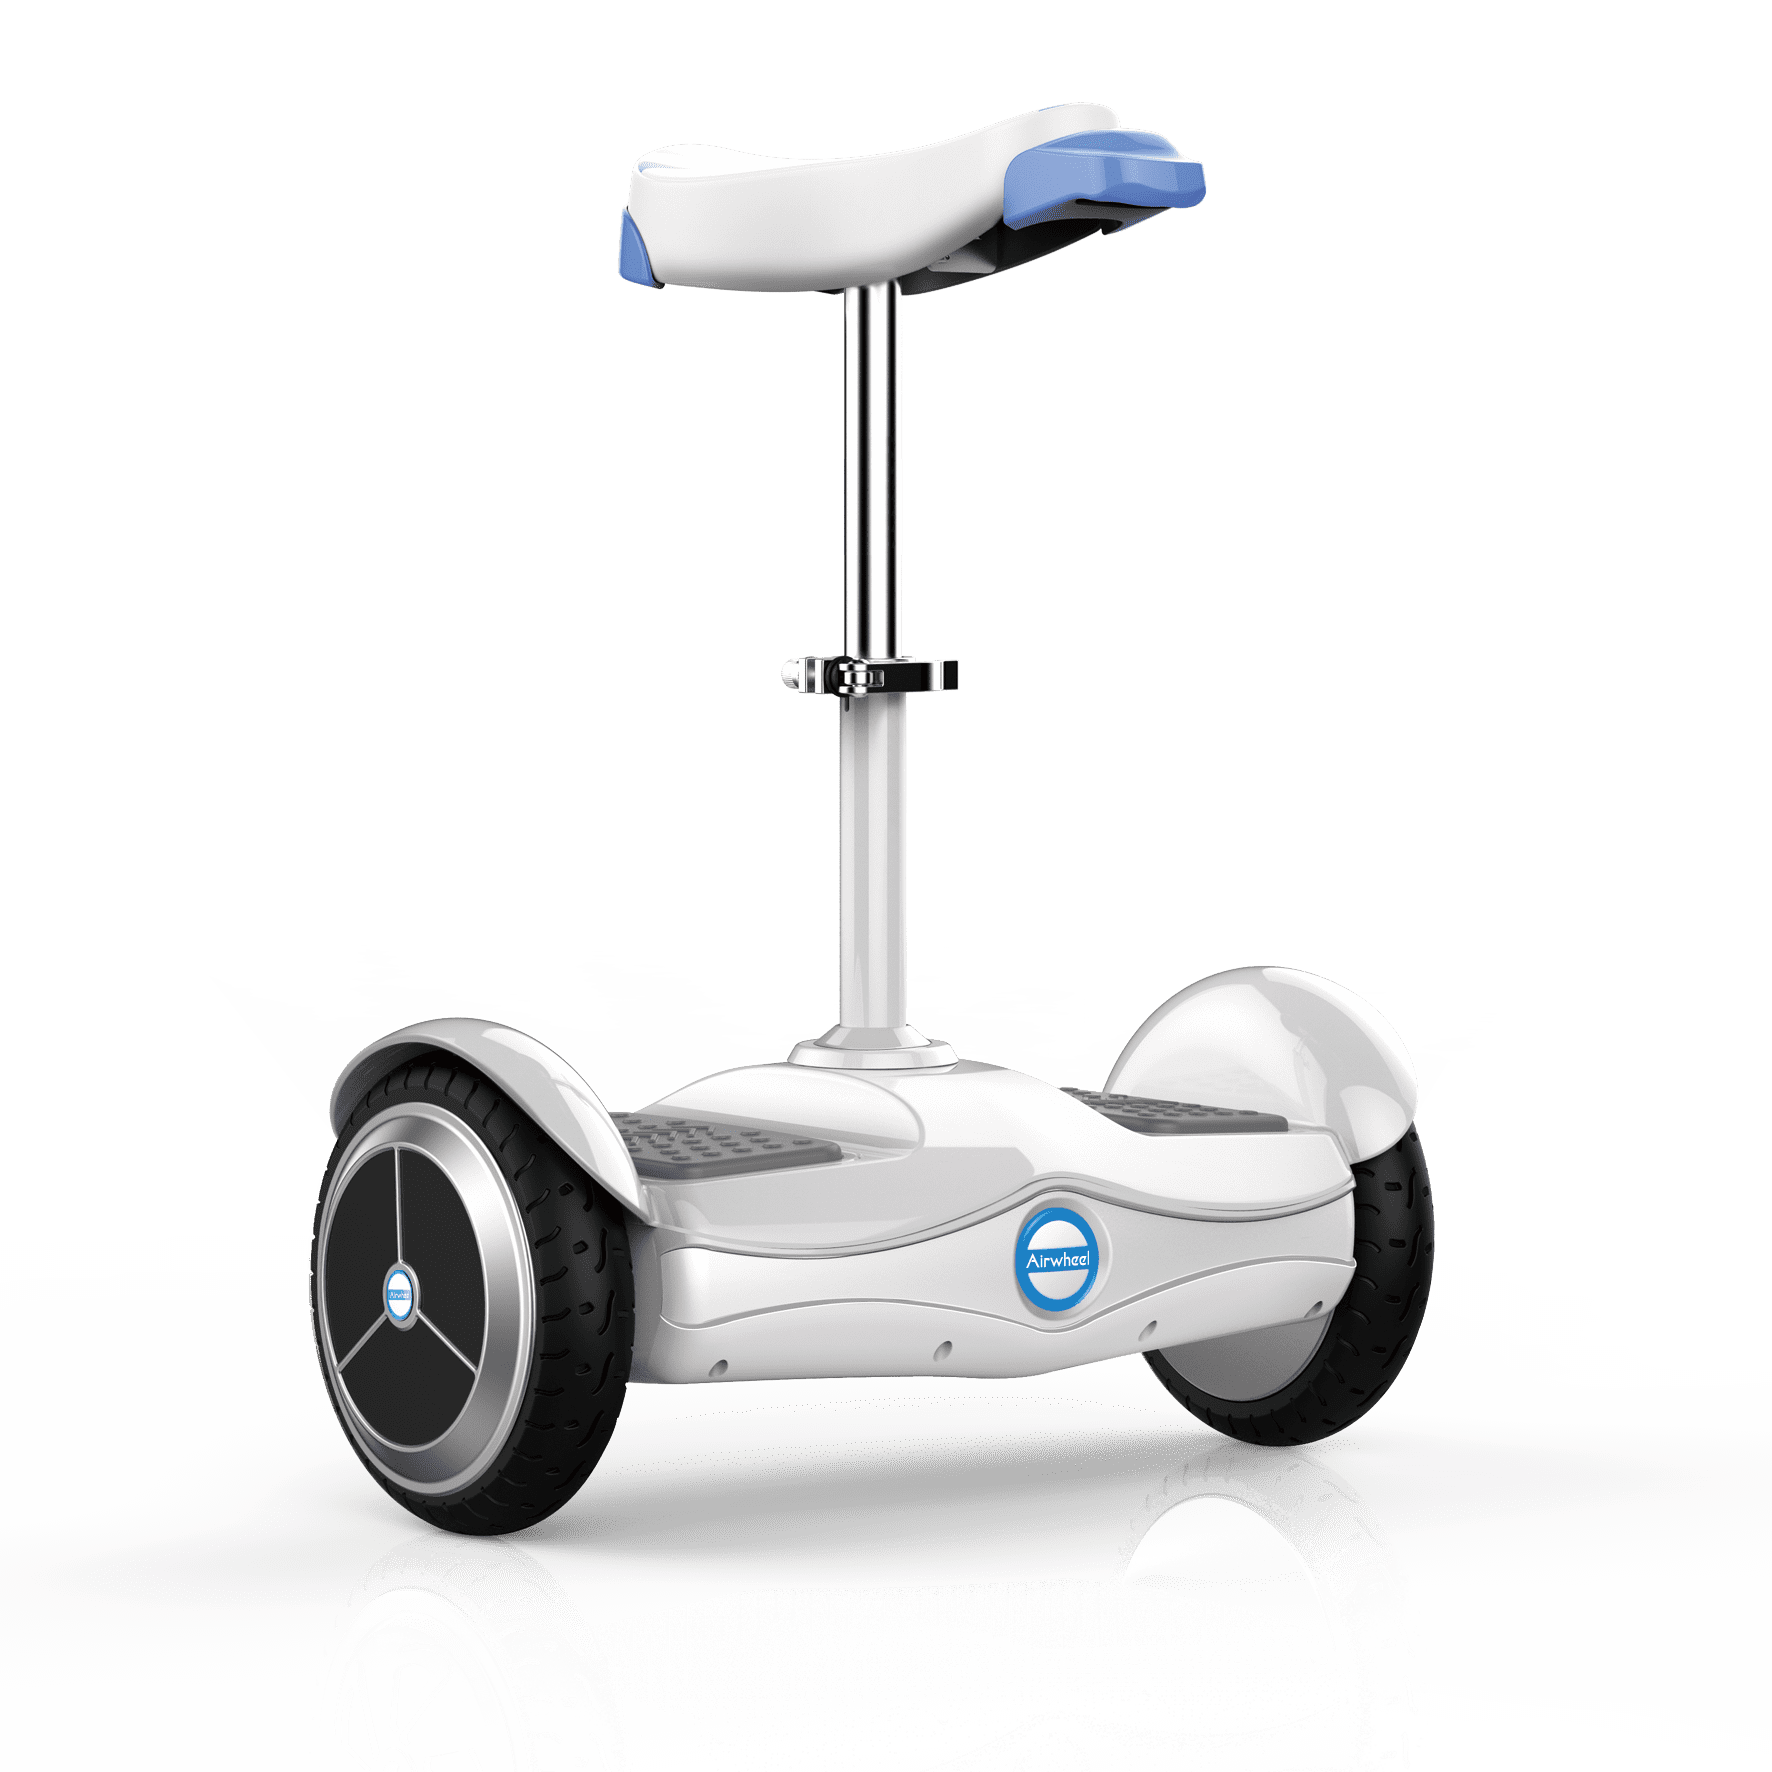 Airwheel S6 Motorized Mobile Seated, Self-Balancing Electric Scooter by